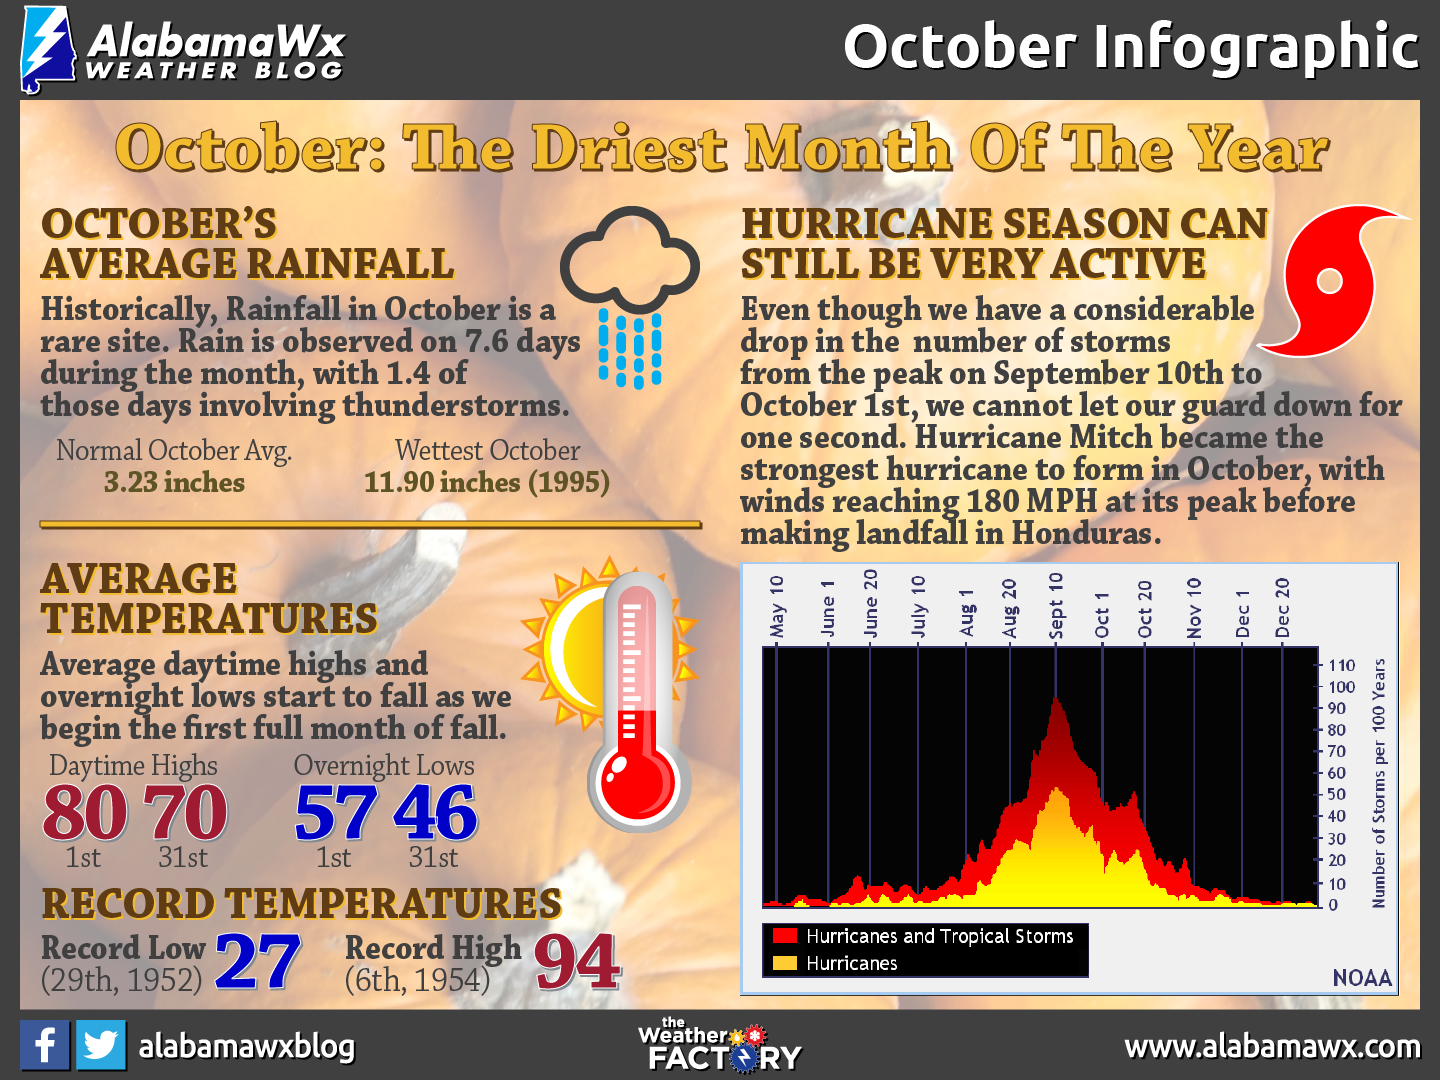 October Infographic by AlabamaWx's Scott Martin